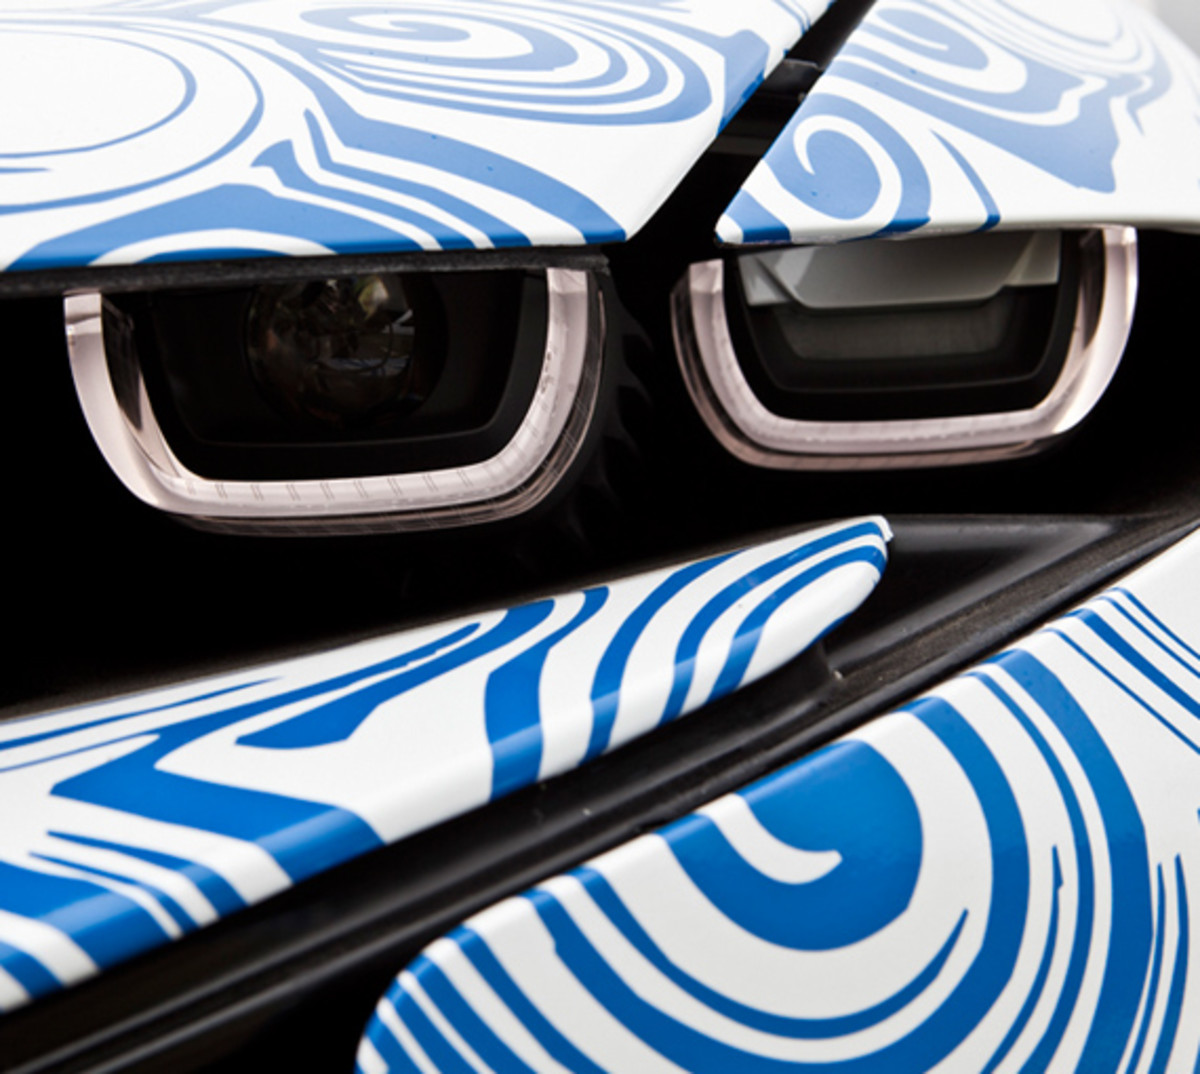 BMW-Vision-EfficientDynamics-test-track-05